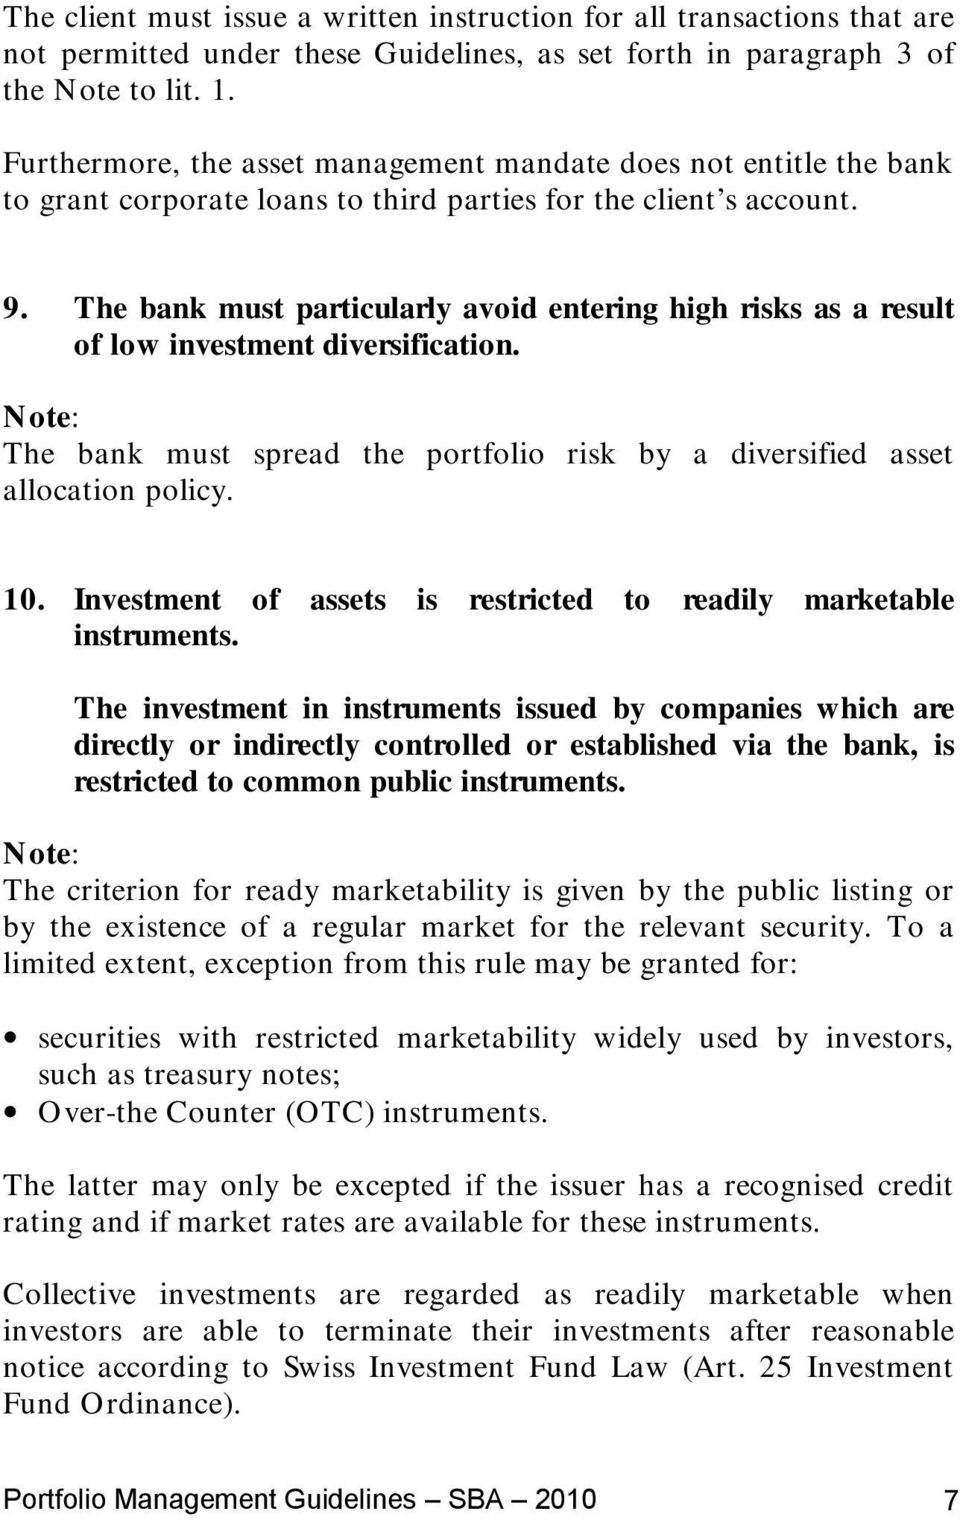 The bank must particularly avoid entering high risks as a result of low investment diversification. The bank must spread the portfolio risk by a diversified asset allocation policy. 10.